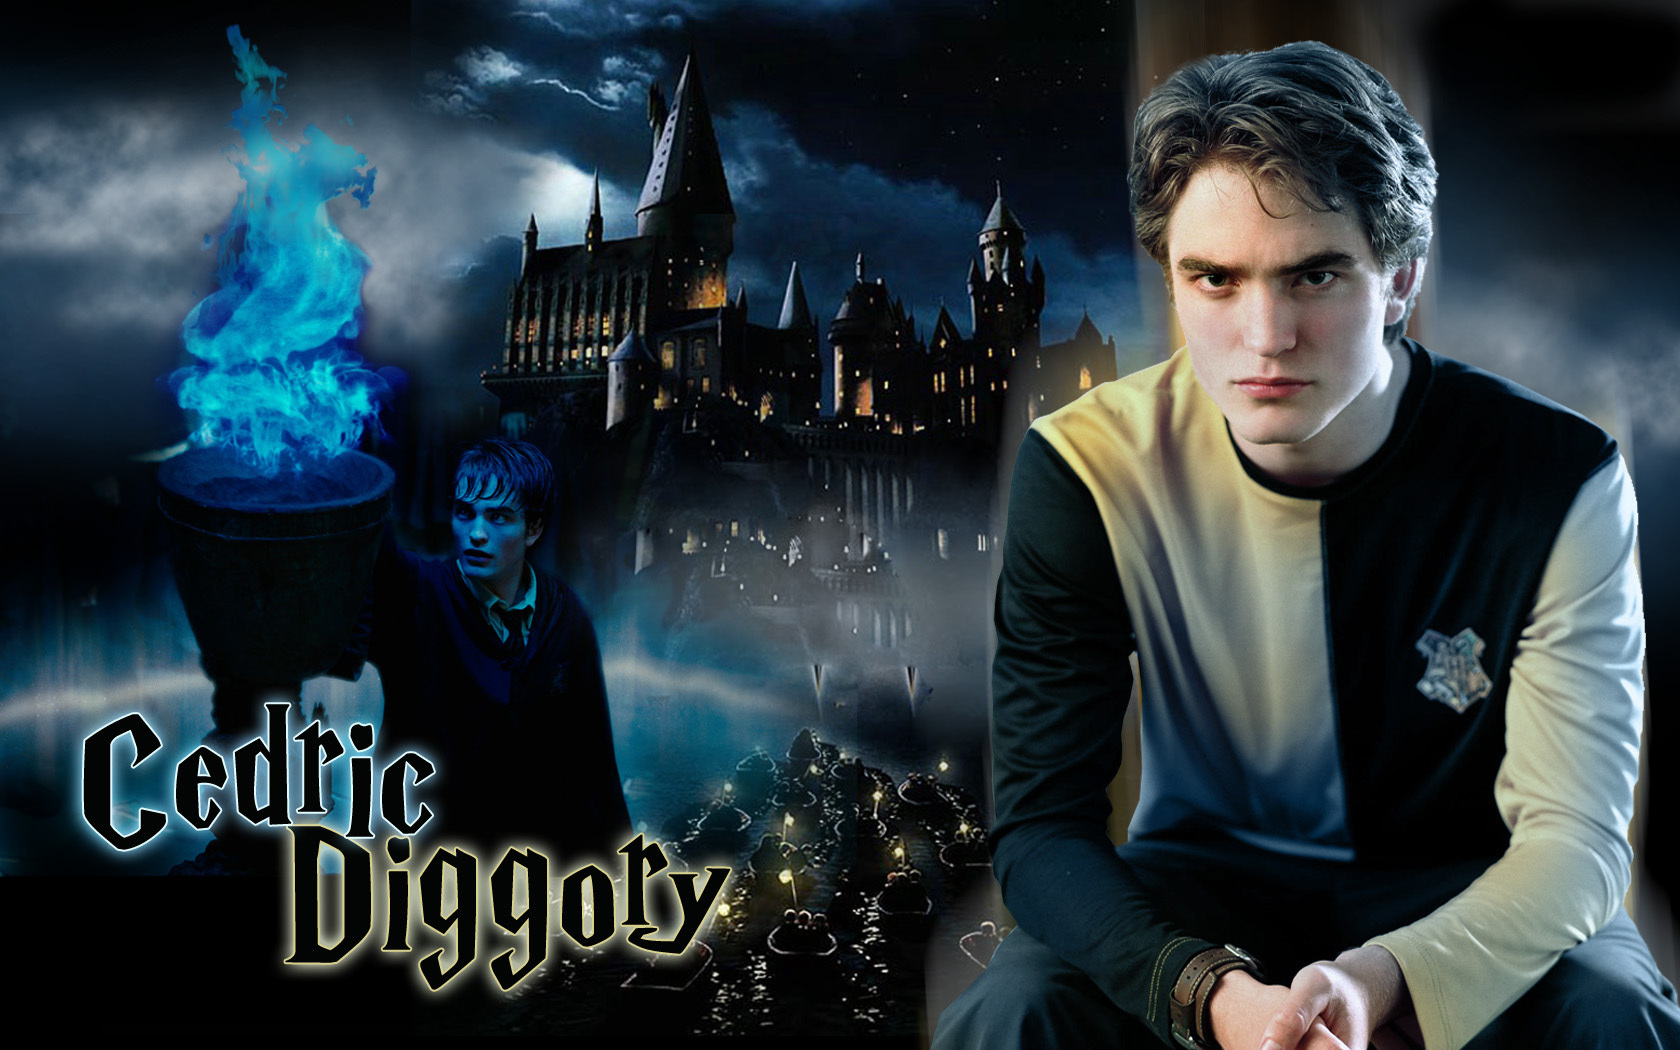 •♥• Robert Pattinson as Cedric Diggory HARRY POTTER দেওয়ালপত্র •♥•